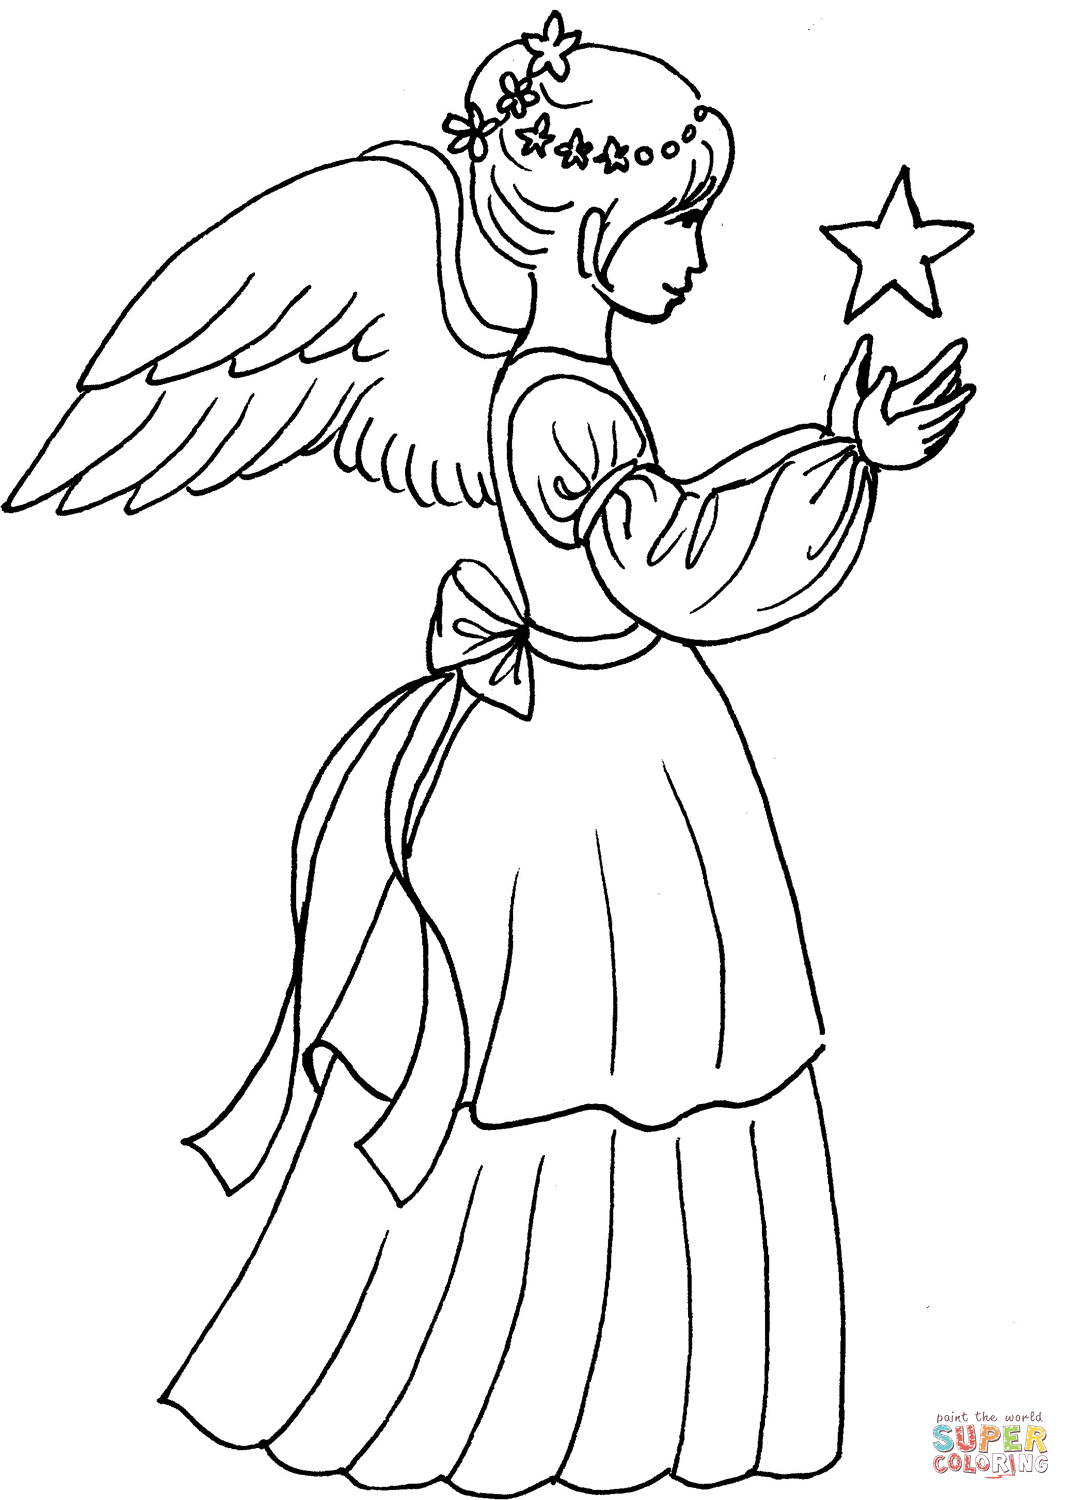 coloring angel kids found on bing from wwwsupercoloringcom angel coloring angel coloring kids